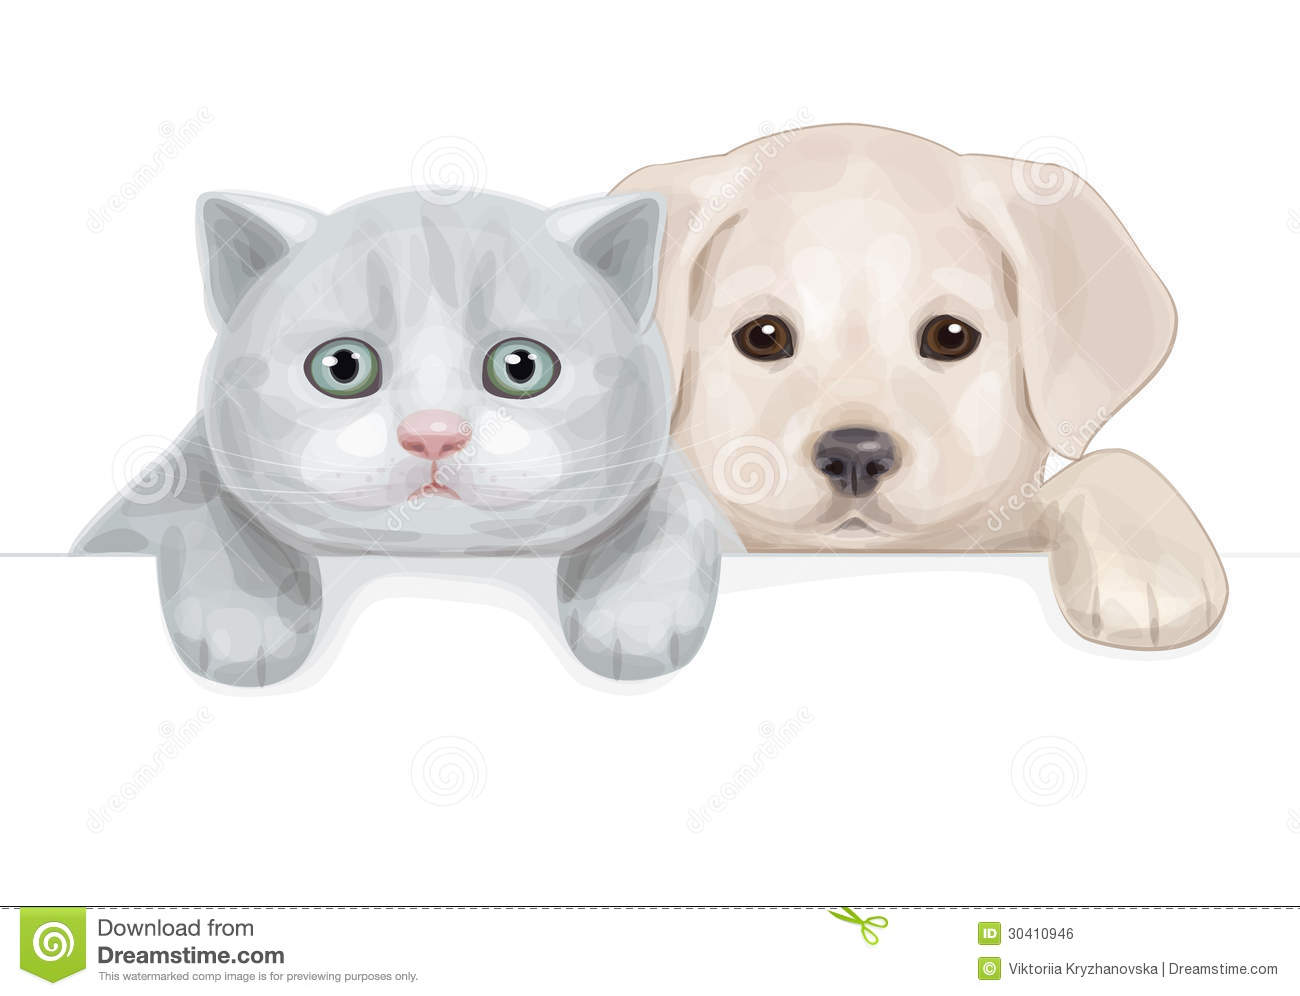 vector of cute puppy and kitten hiding by blank royalty free kitchen clipart images free kitchen clipart borders 8-1/2 by 11